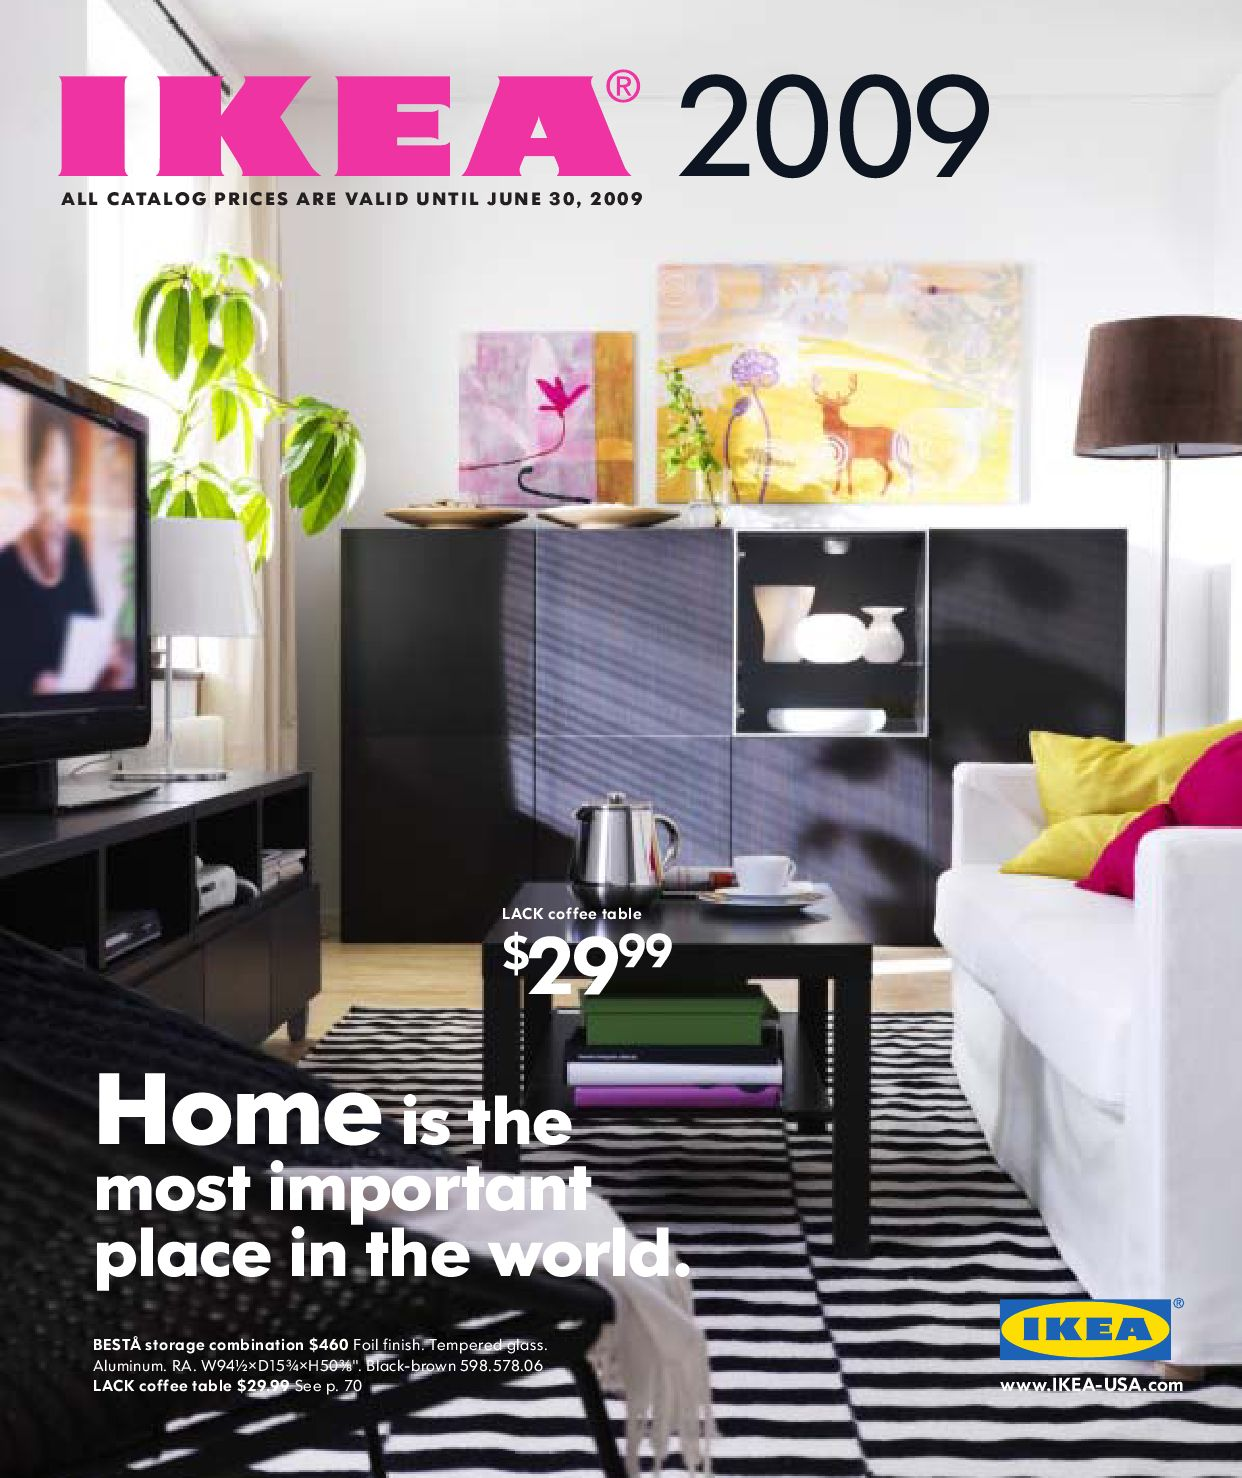 ikea 2009 catalogue by muhammad mansour